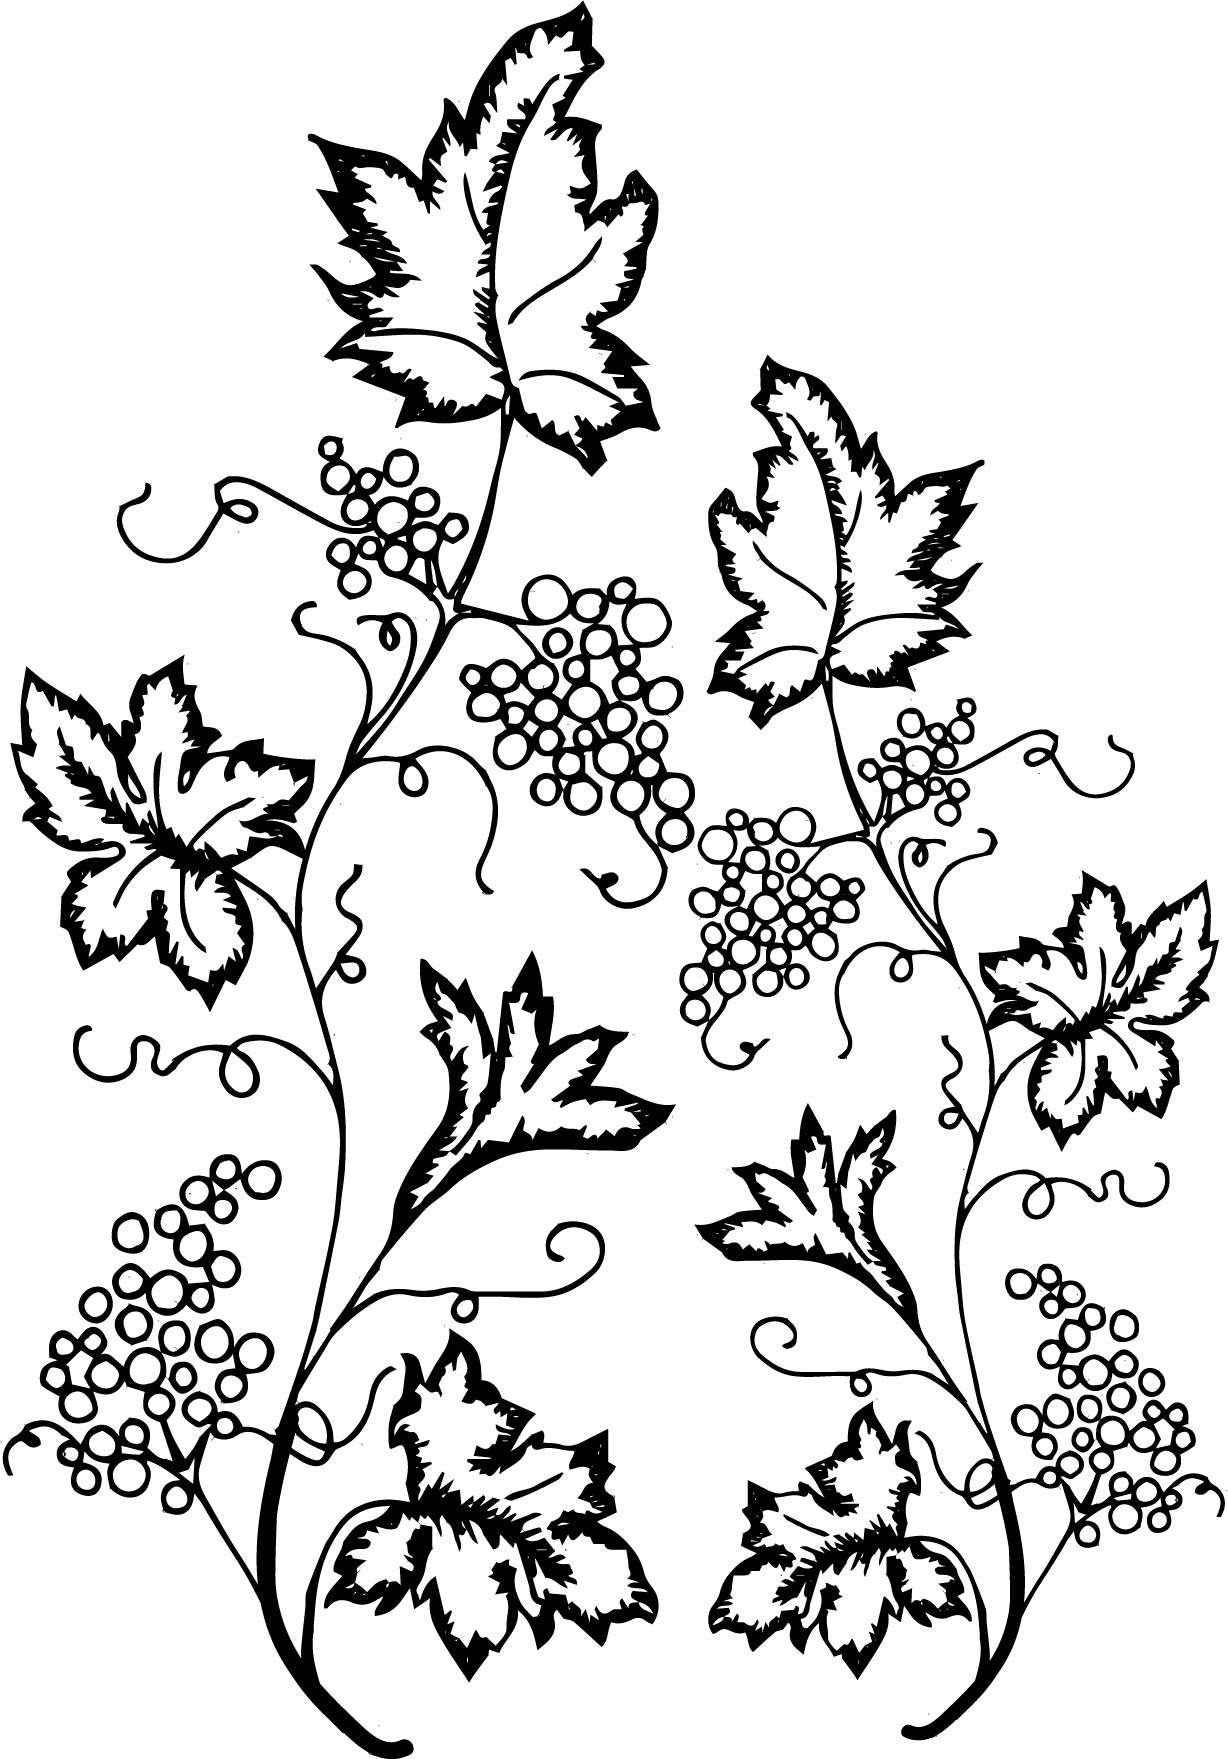 Grape Leaf Ivy Coloring Page | Wecoloringpage